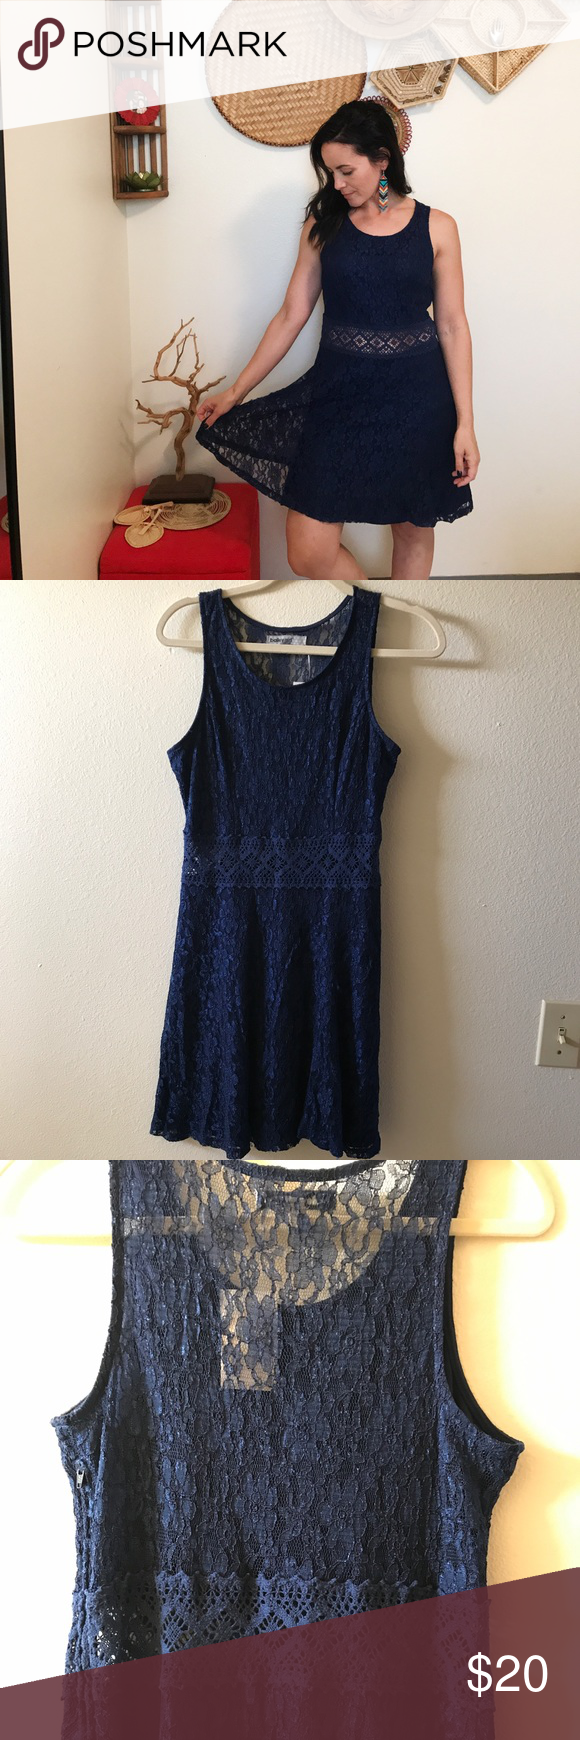 Bailey Blue Daina Lace Dress This Navy Fit And Flare Dress